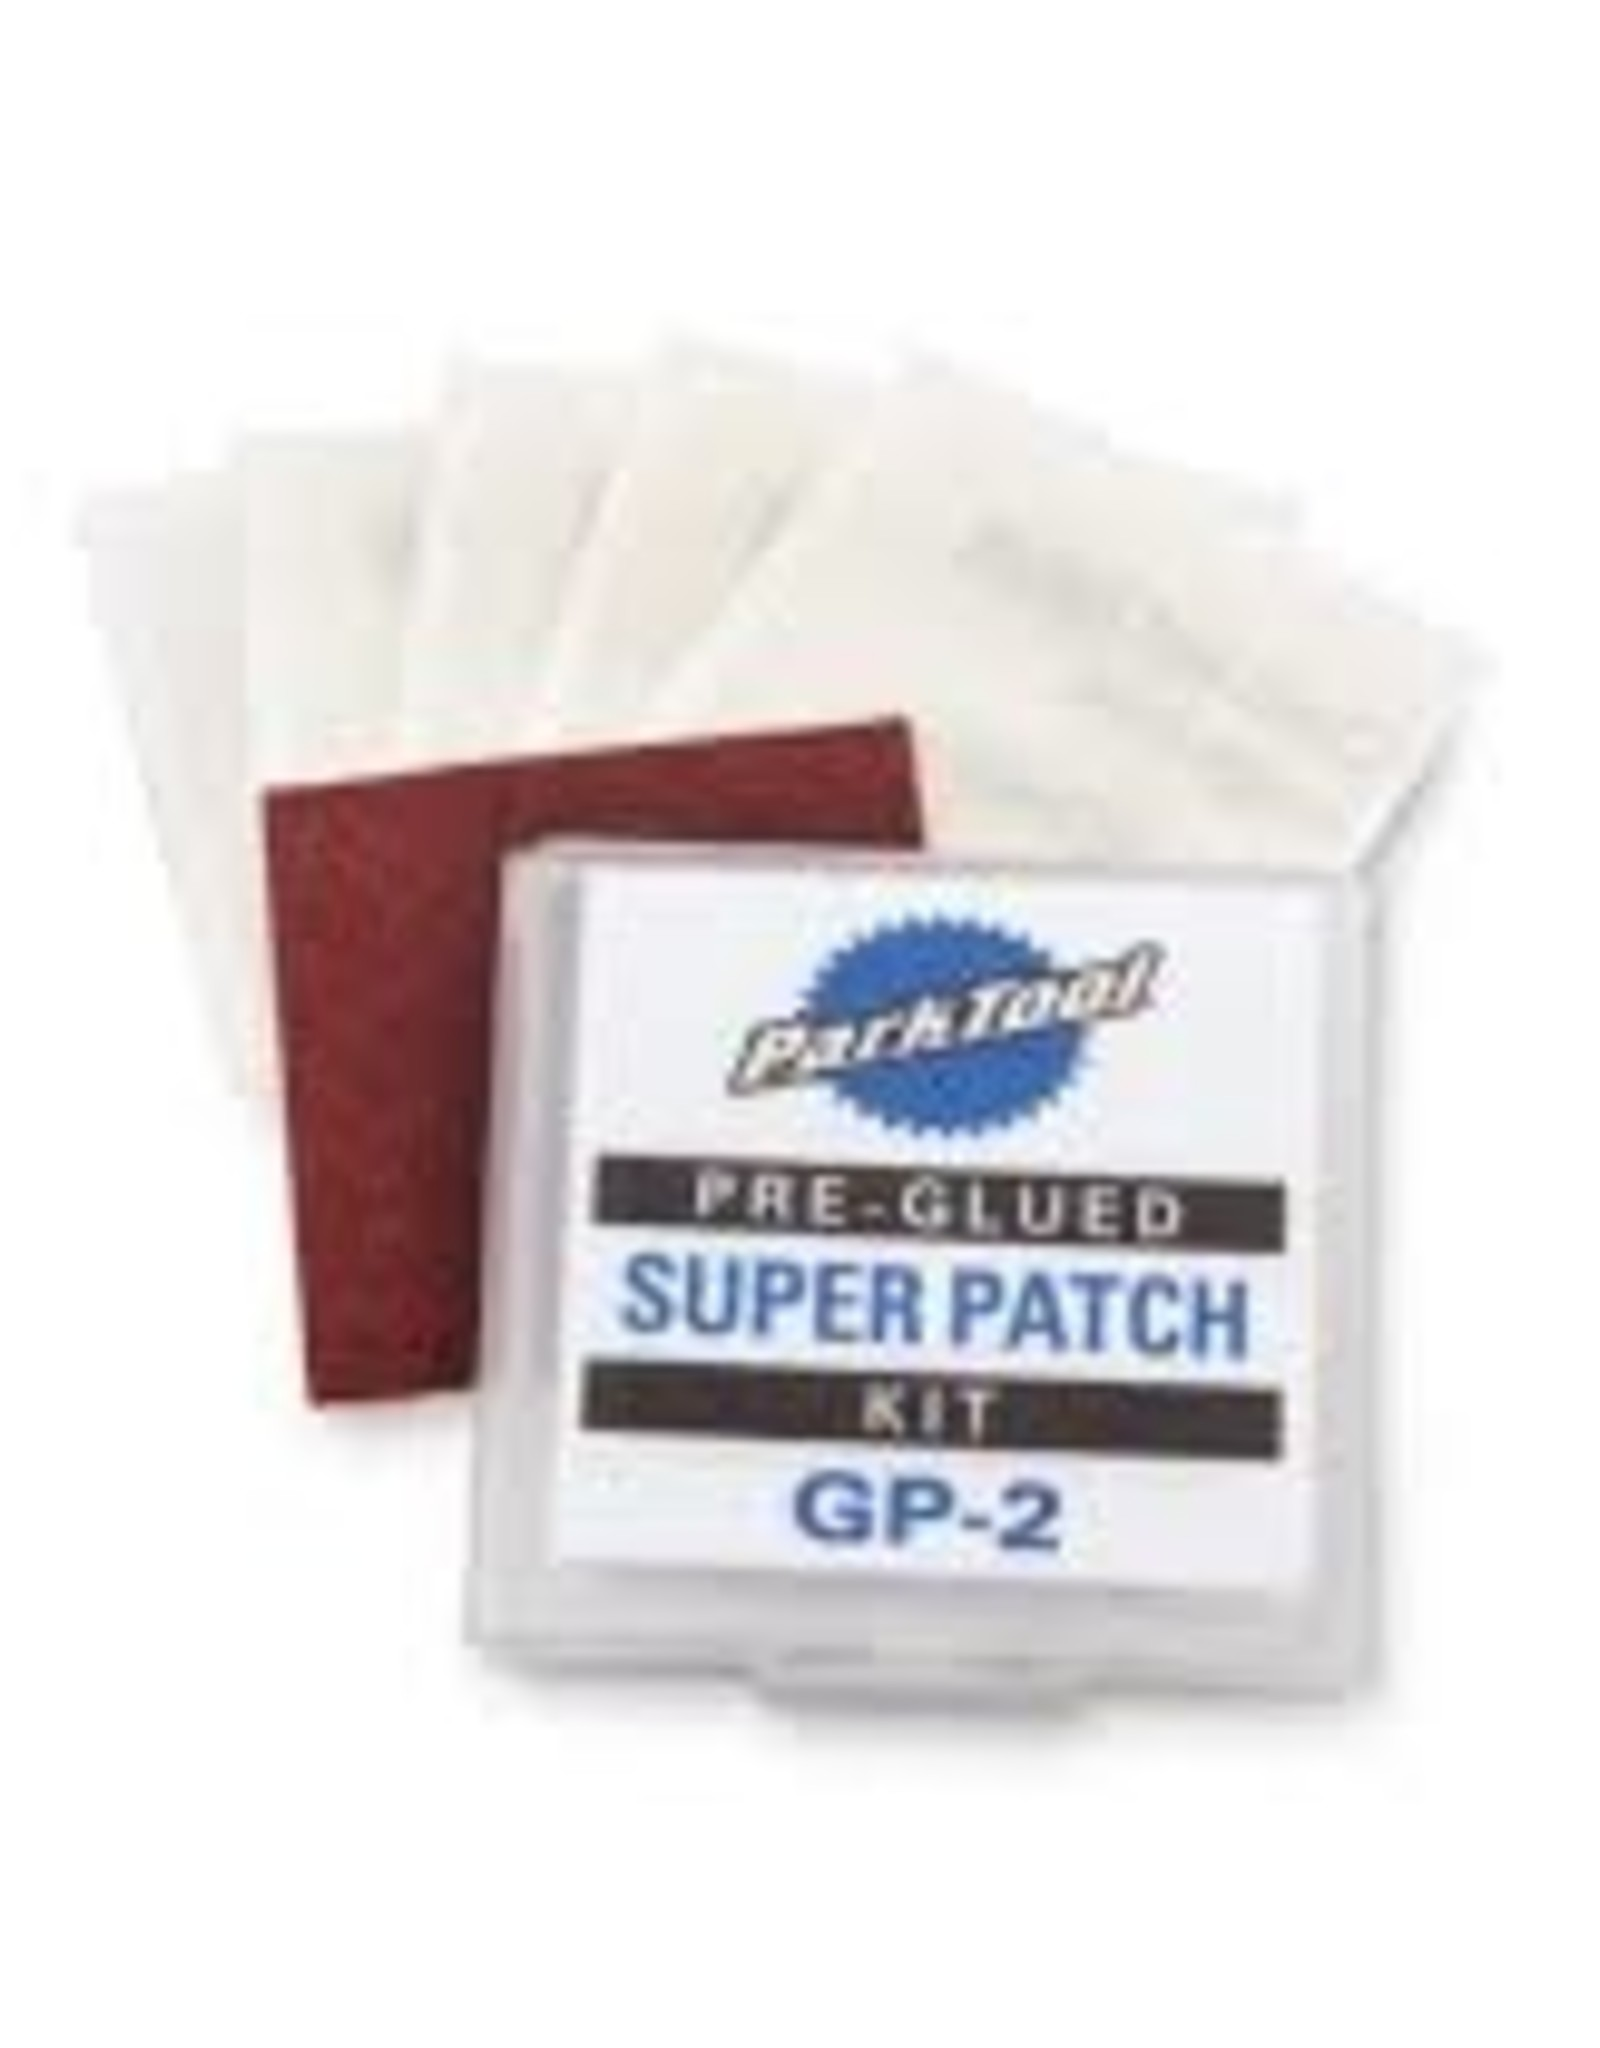 Park Tool Glueless Patch Kit: Carded and Sold as Each